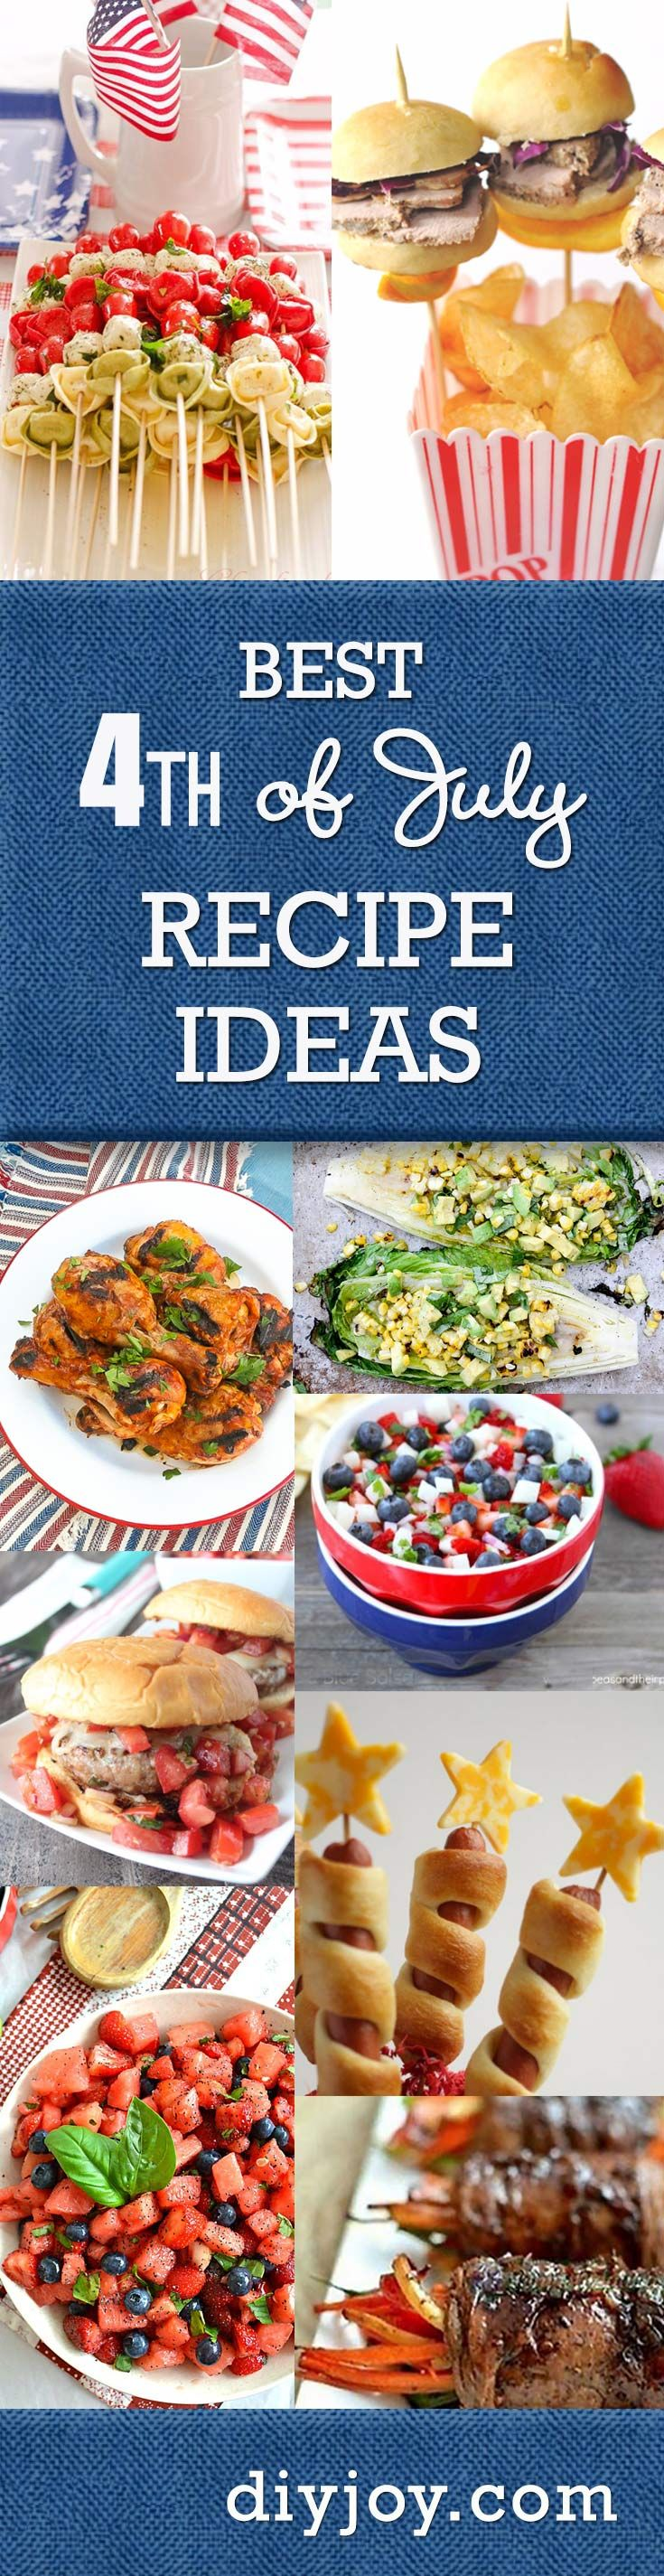 Best 4th of july recipes ever foodie pinterest diy party fun best 4th of july recipe ideas ever fun food for the fourth and diy party food forumfinder Image collections